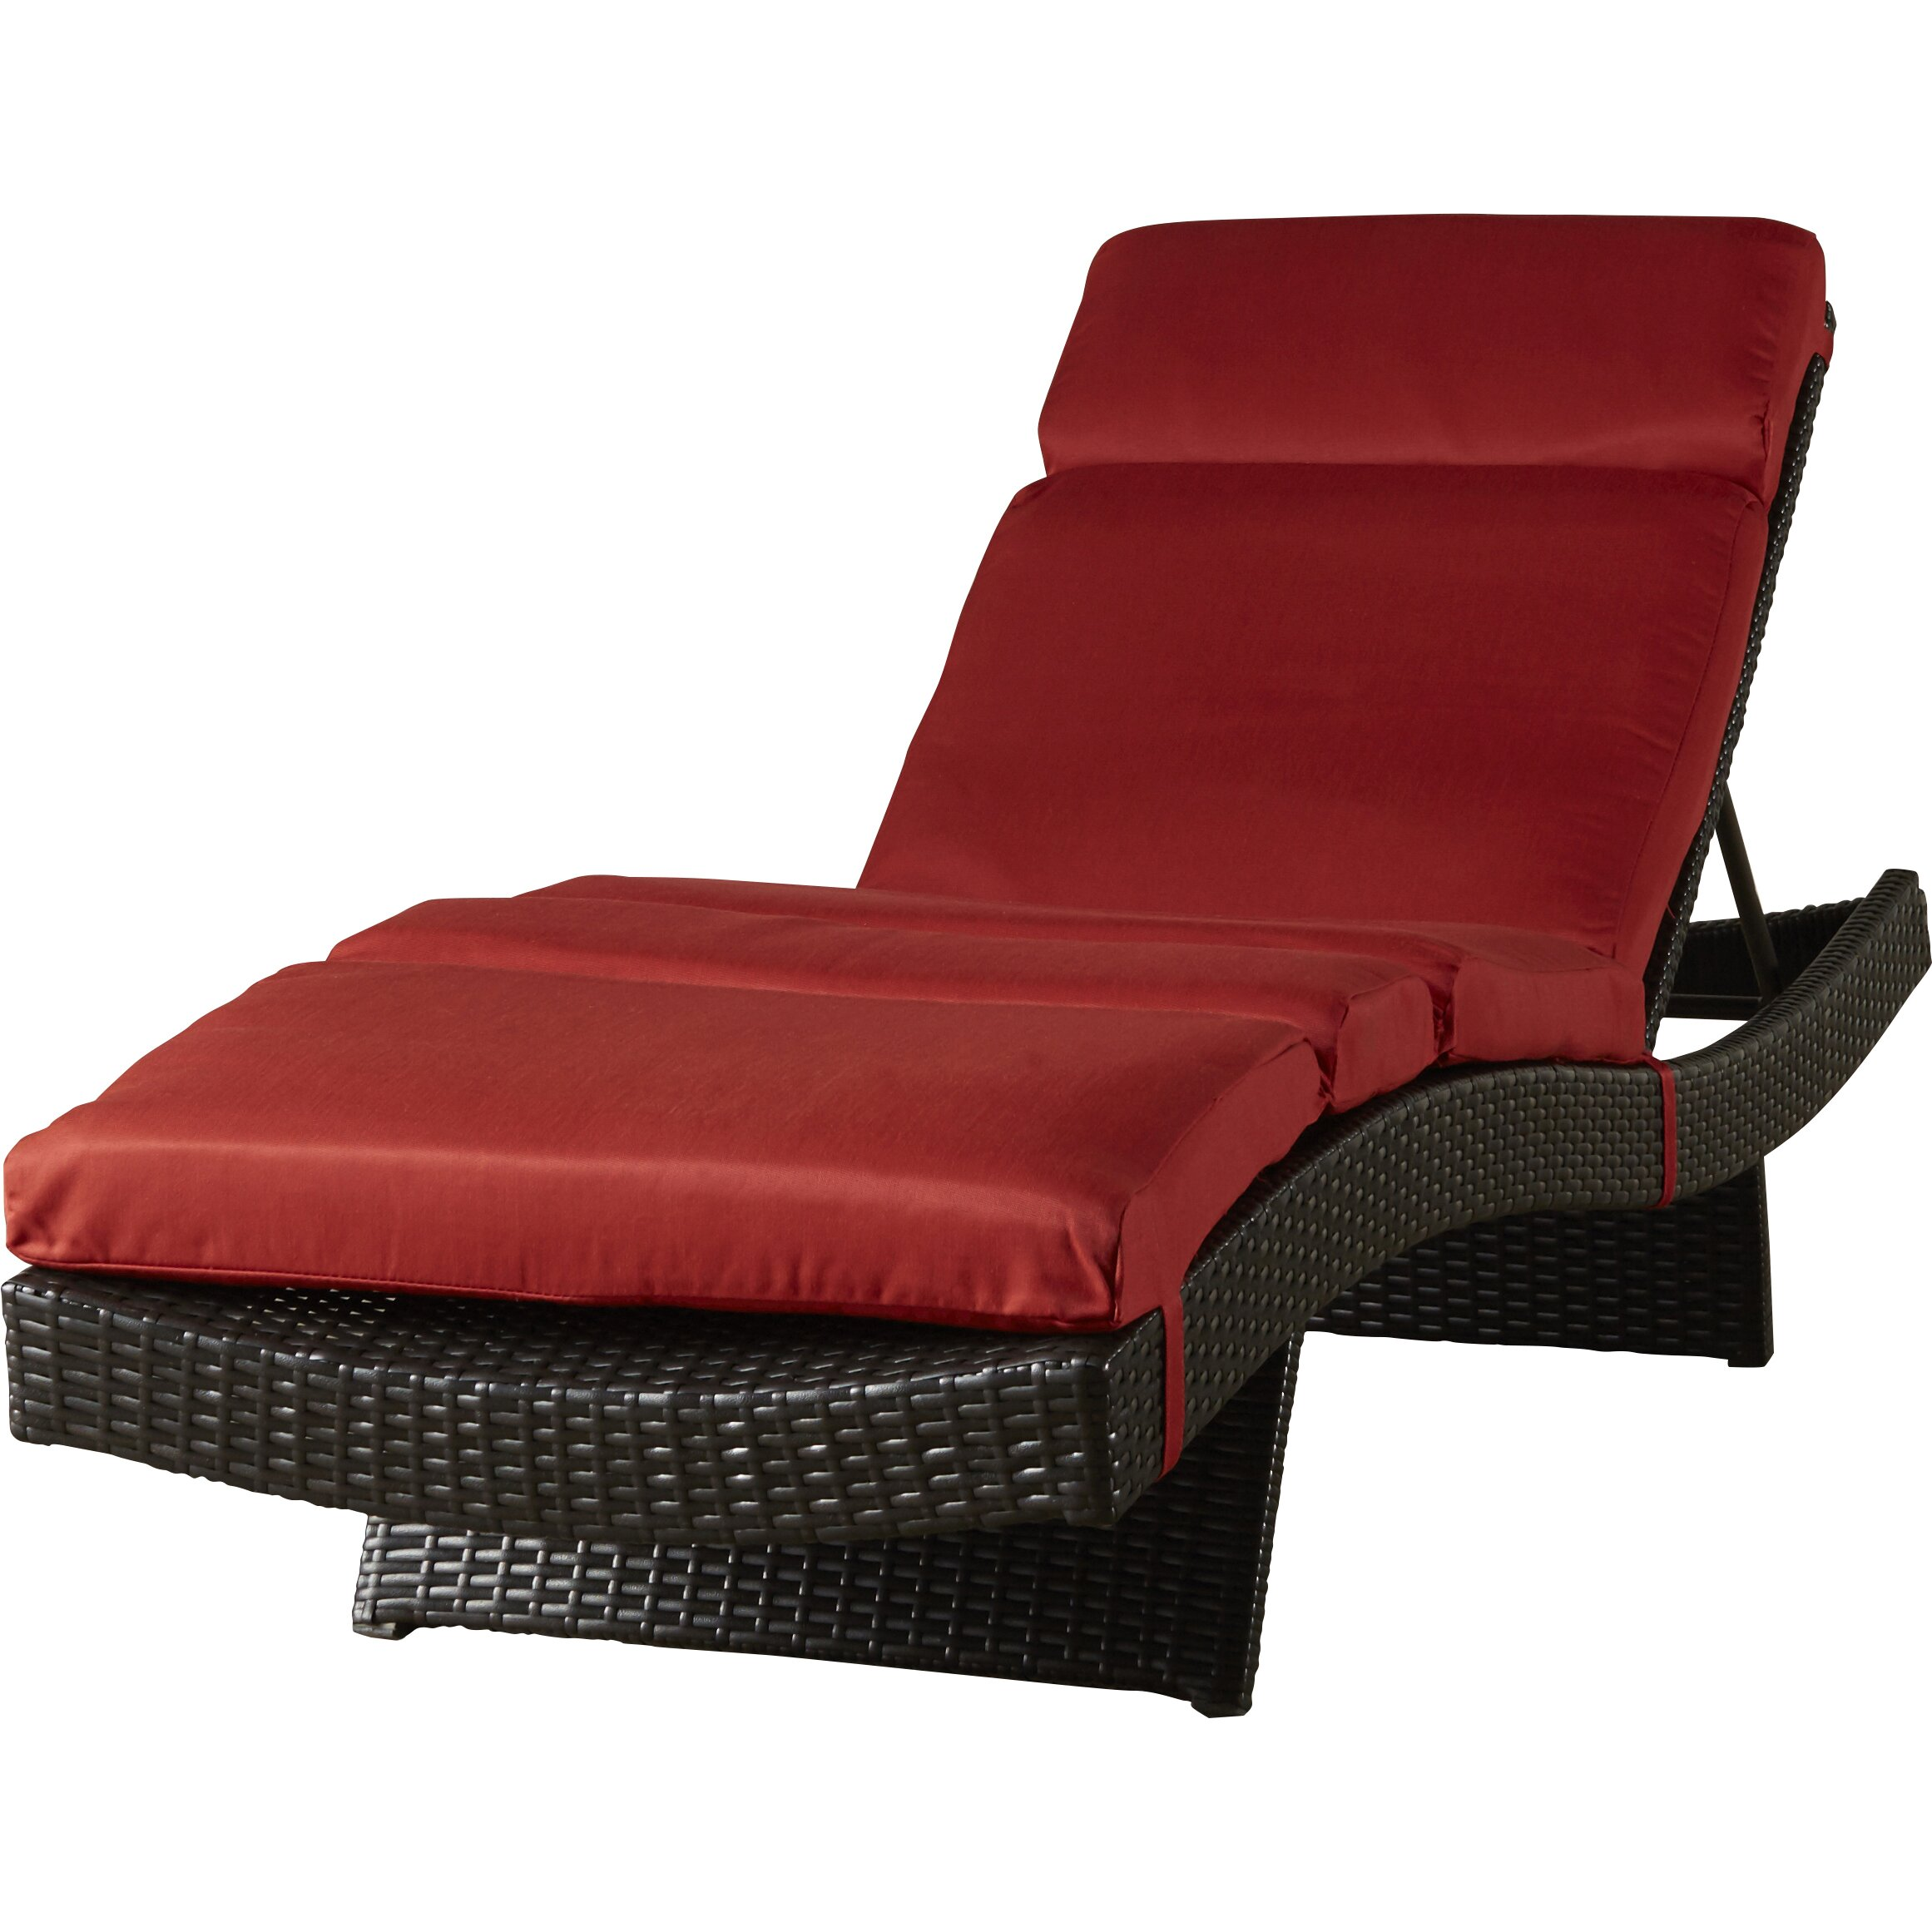 Three posts northridge chaise lounge with cushion for Buy chaise lounge cushion